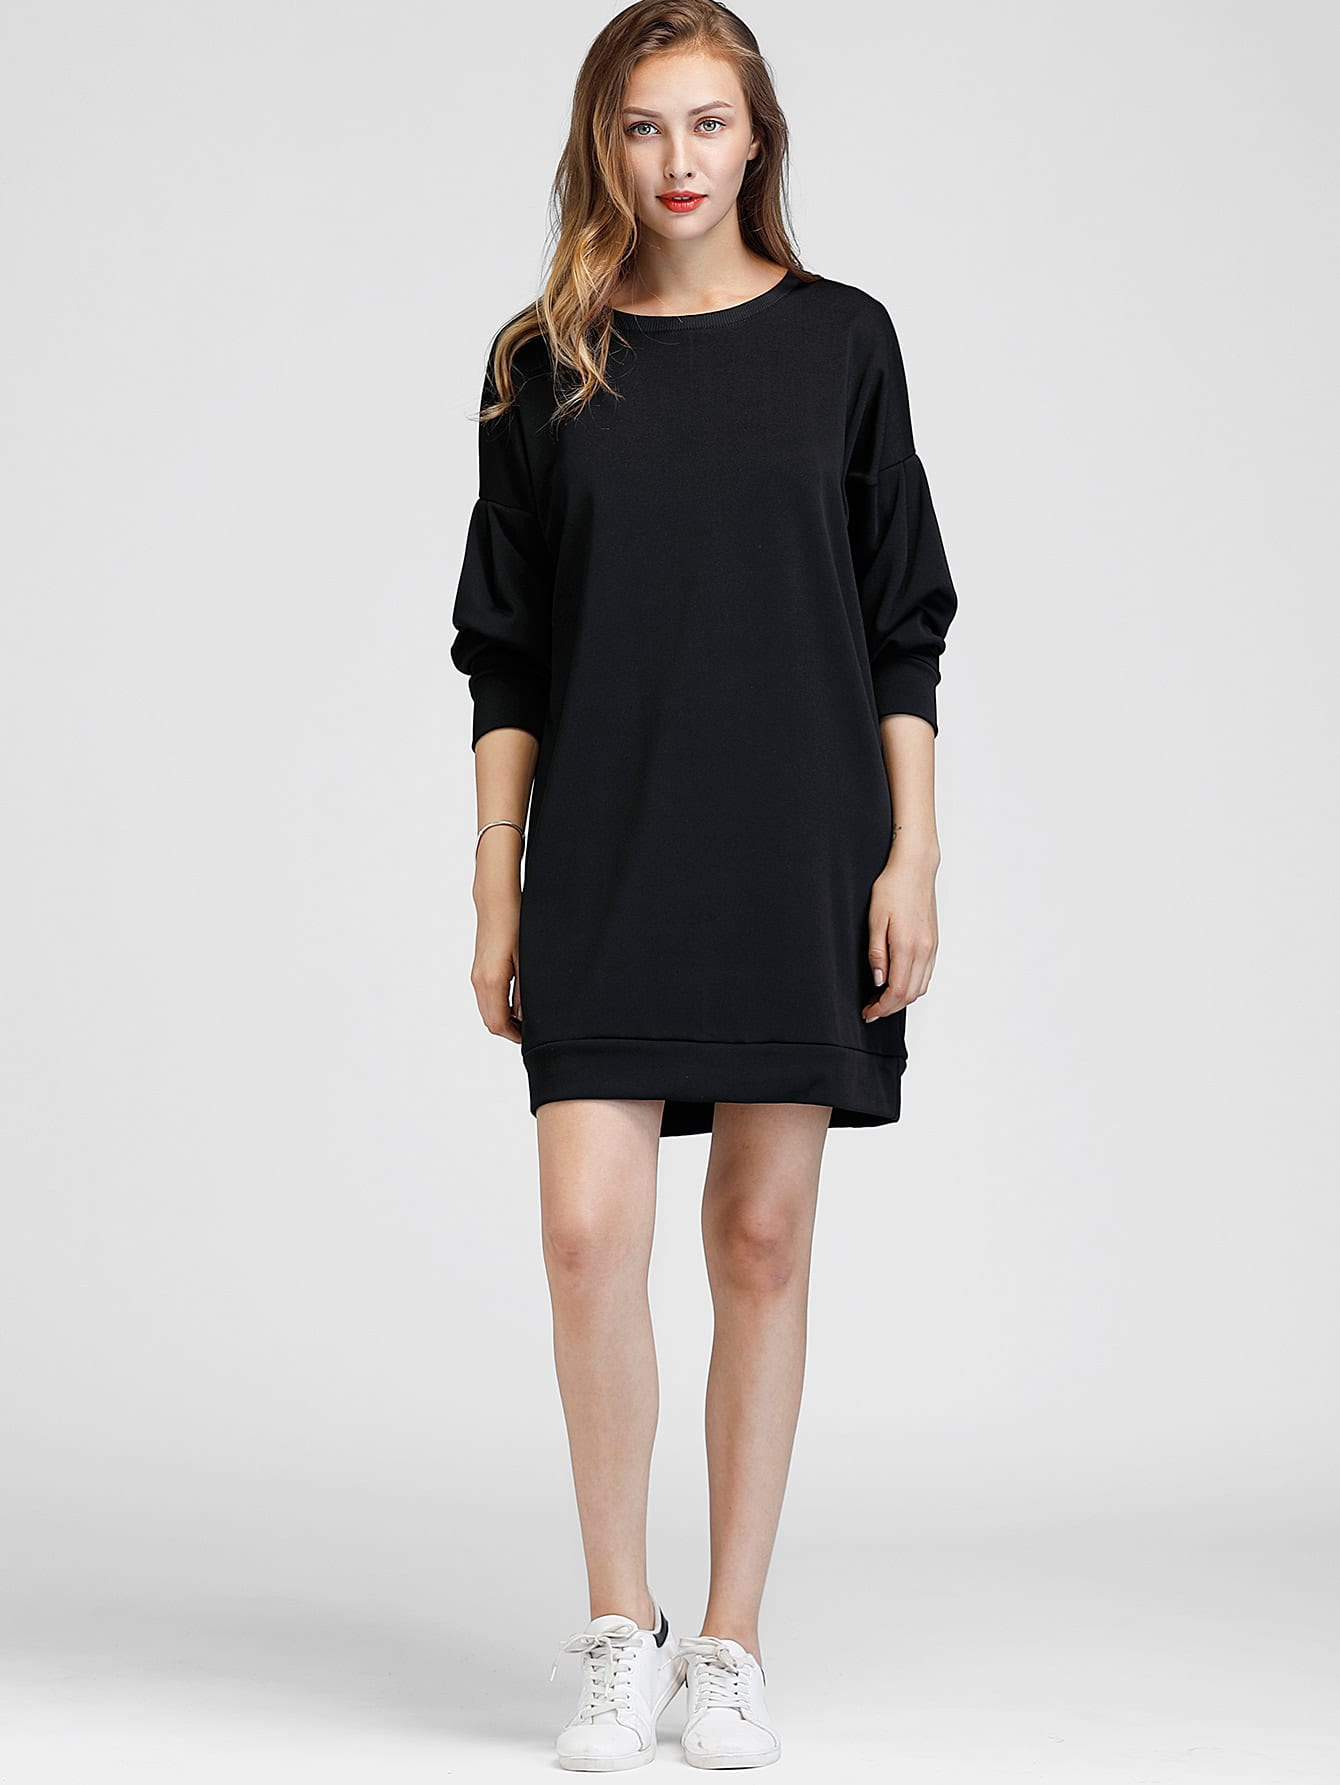 Drop Shoulder Sweatshirt Dress long drop shoulder sweatshirt dress with tassel